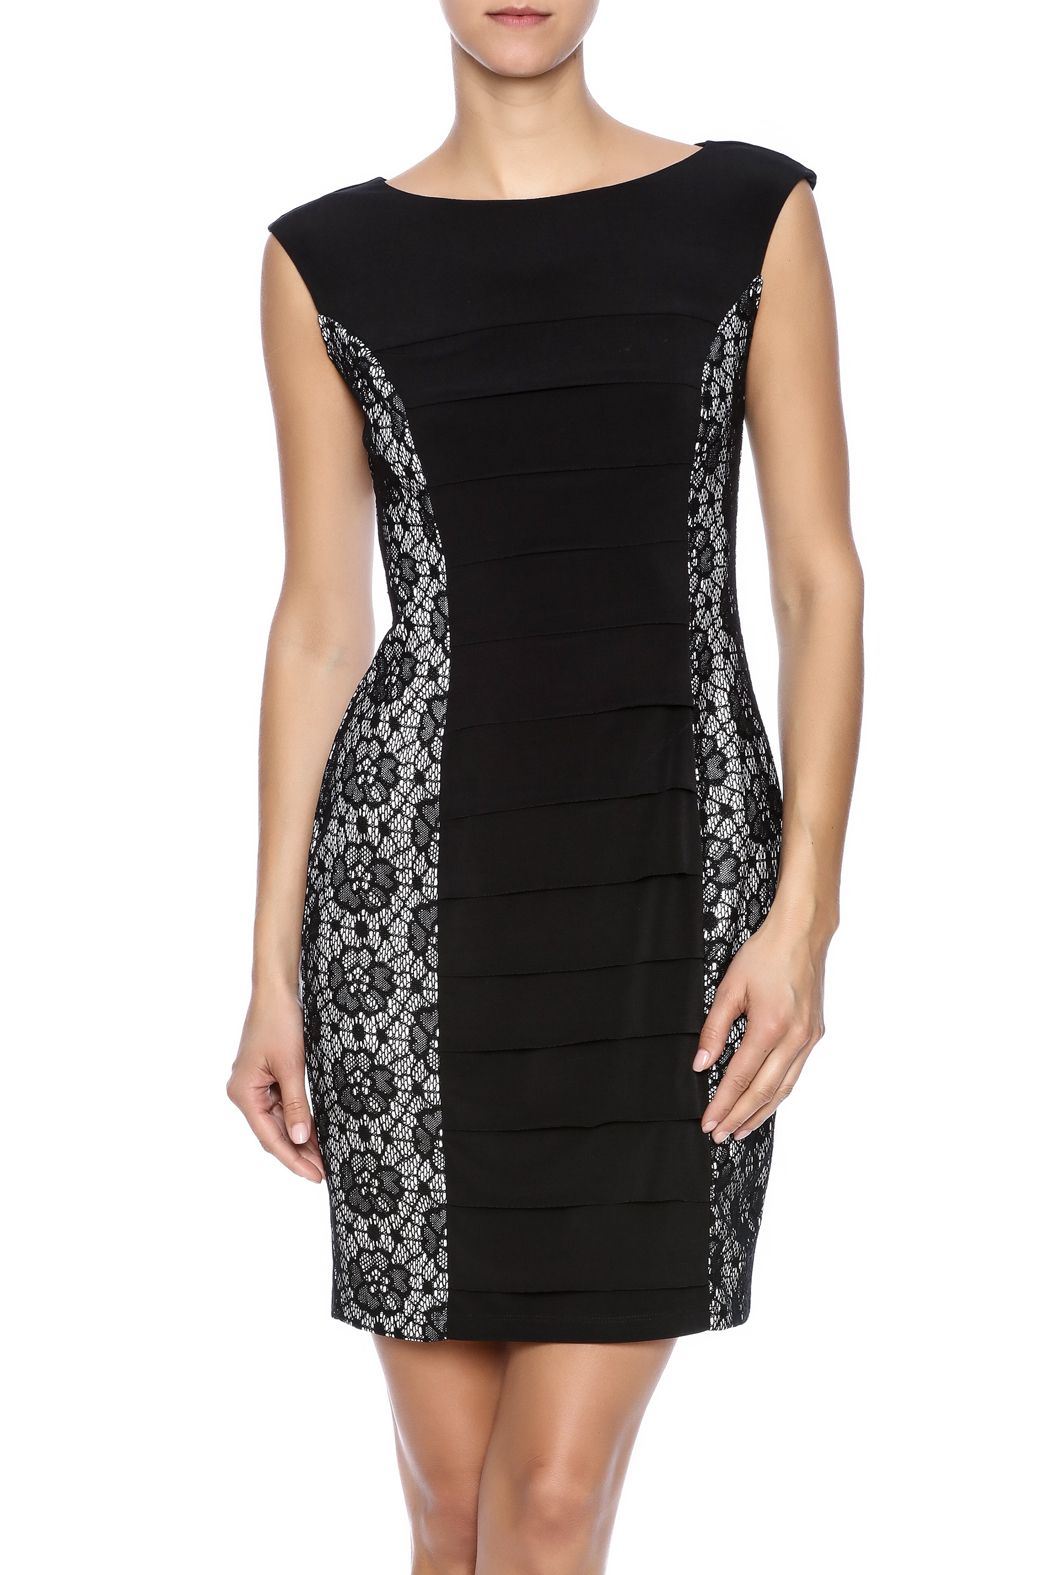 04303dd4e90 Black sleeveless sheath with overlay lace side panels. Bodycon Dress by  Enfocus Studio. Clothing - Dresses - LBD Kentucky